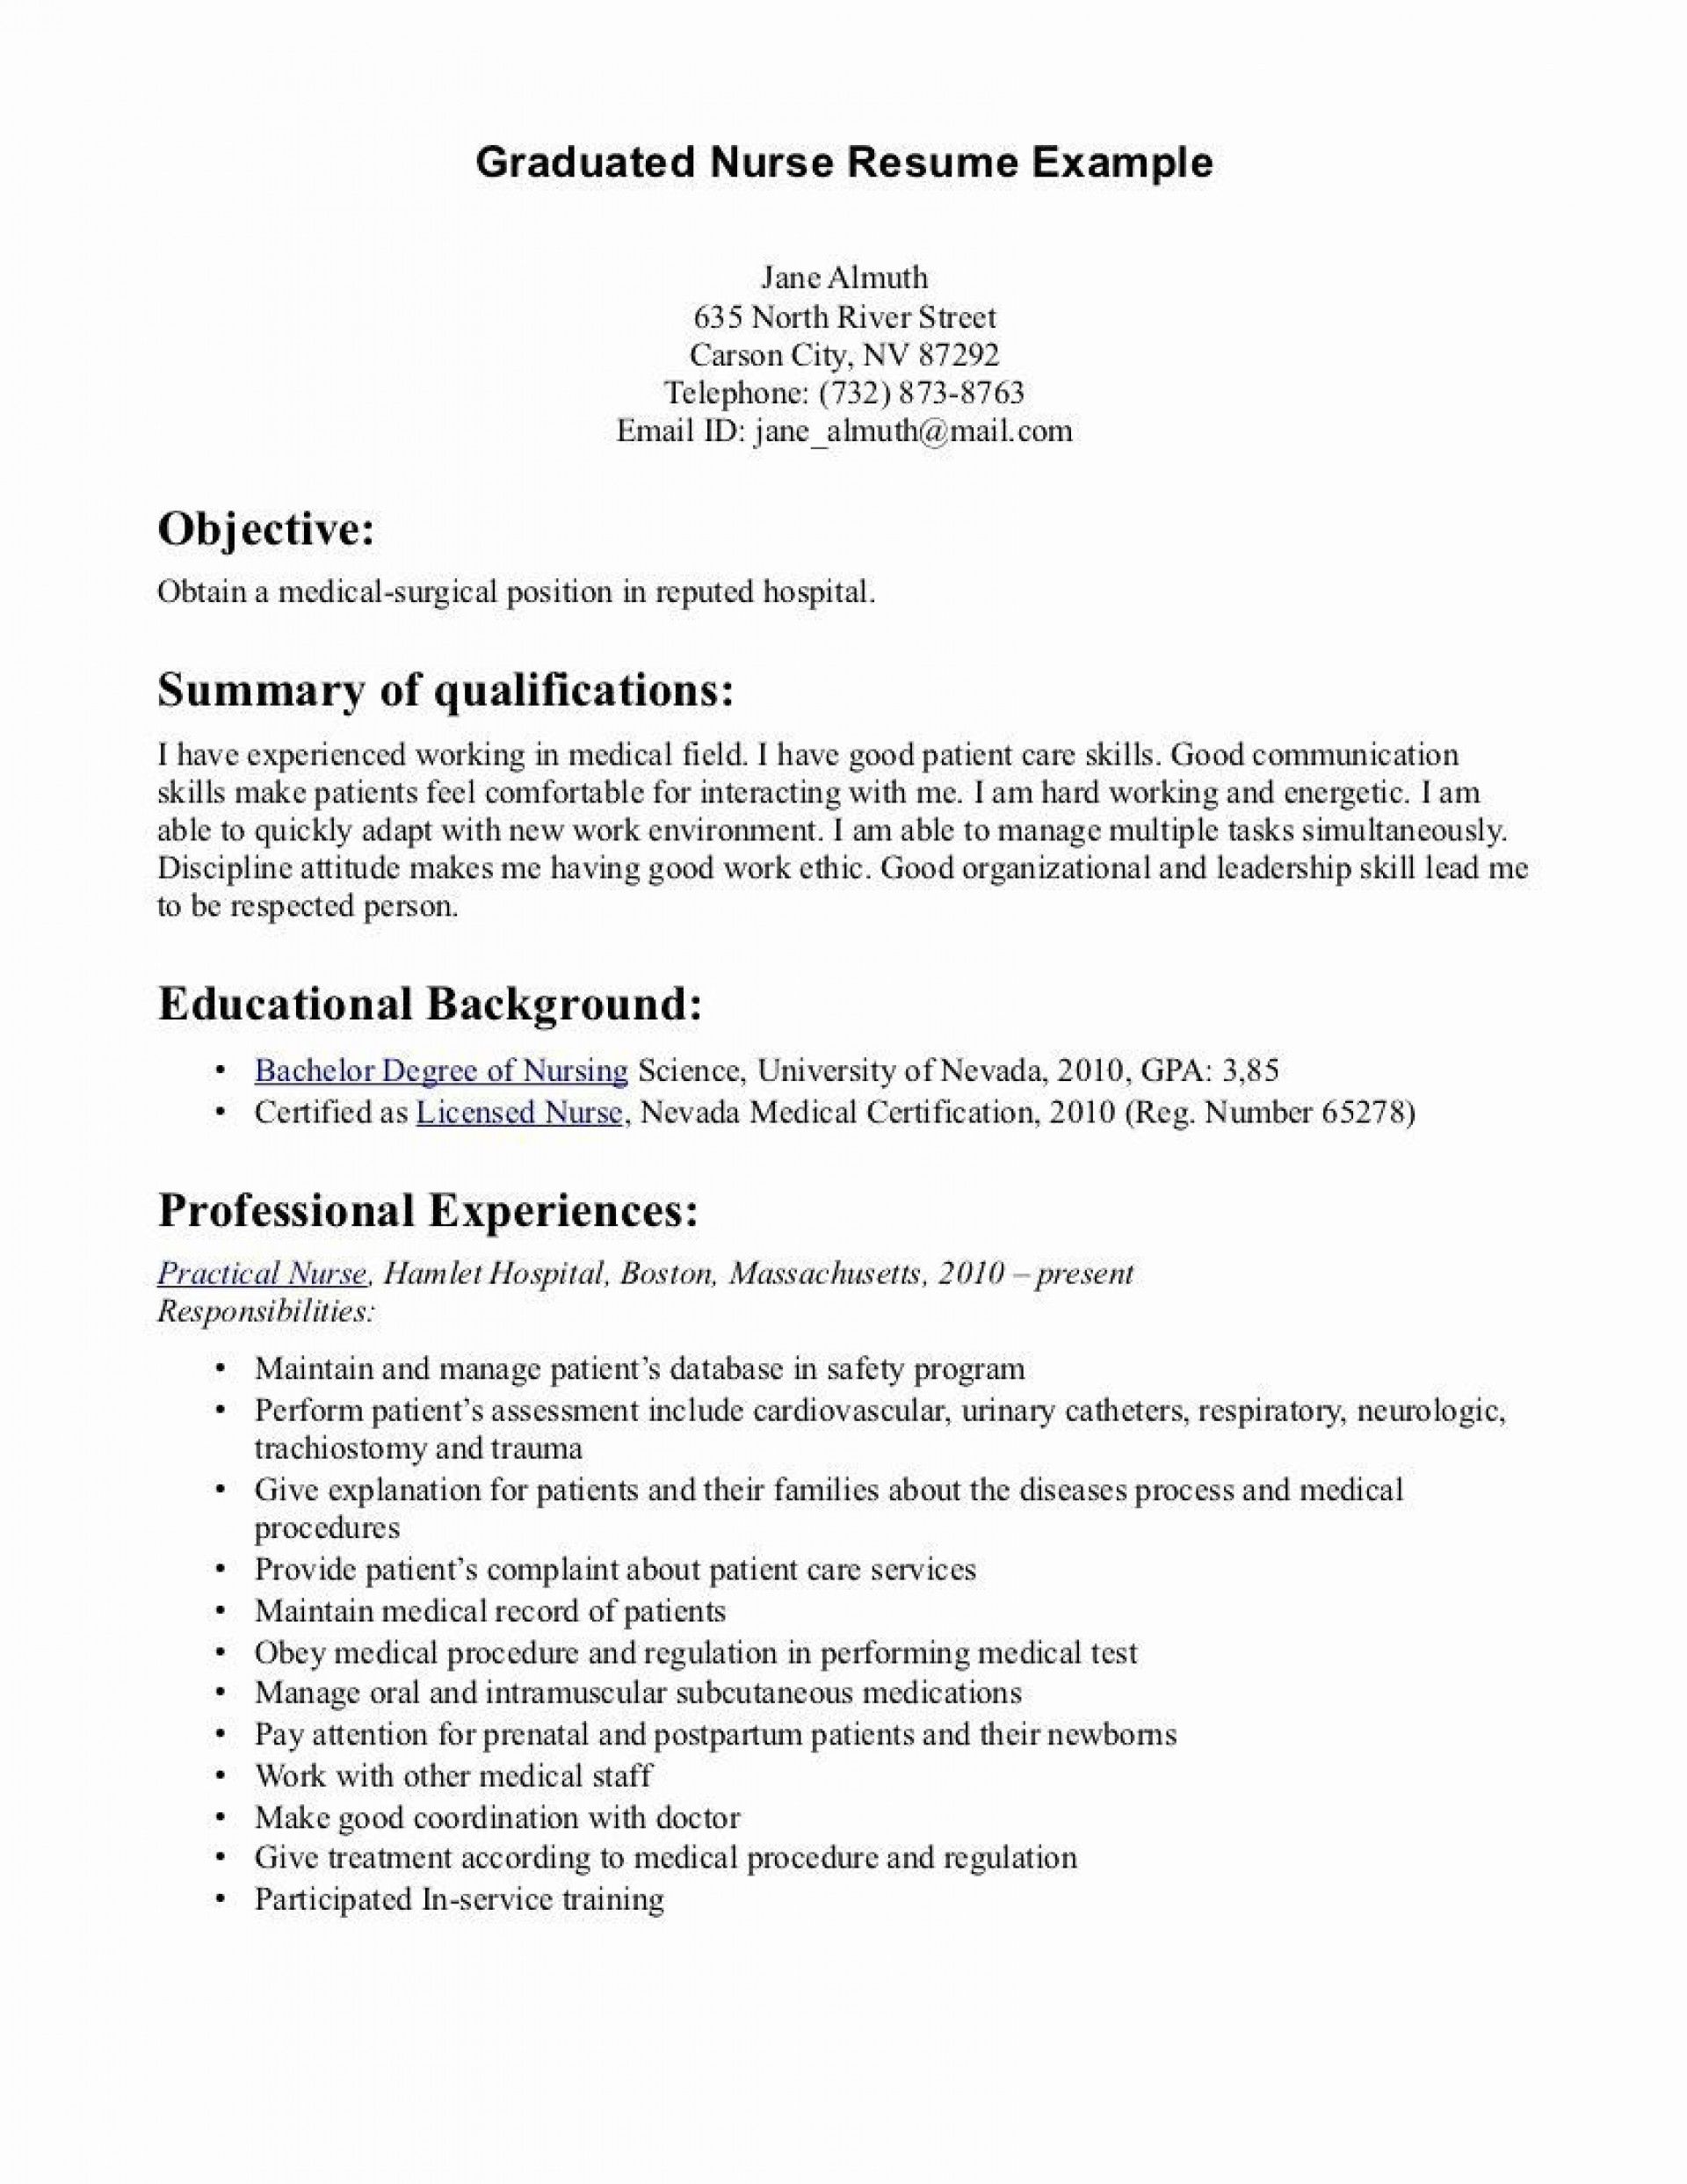 new grad rn resume template addictionary examples remarkable concept full charge Resume New Grad Rn Resume Examples